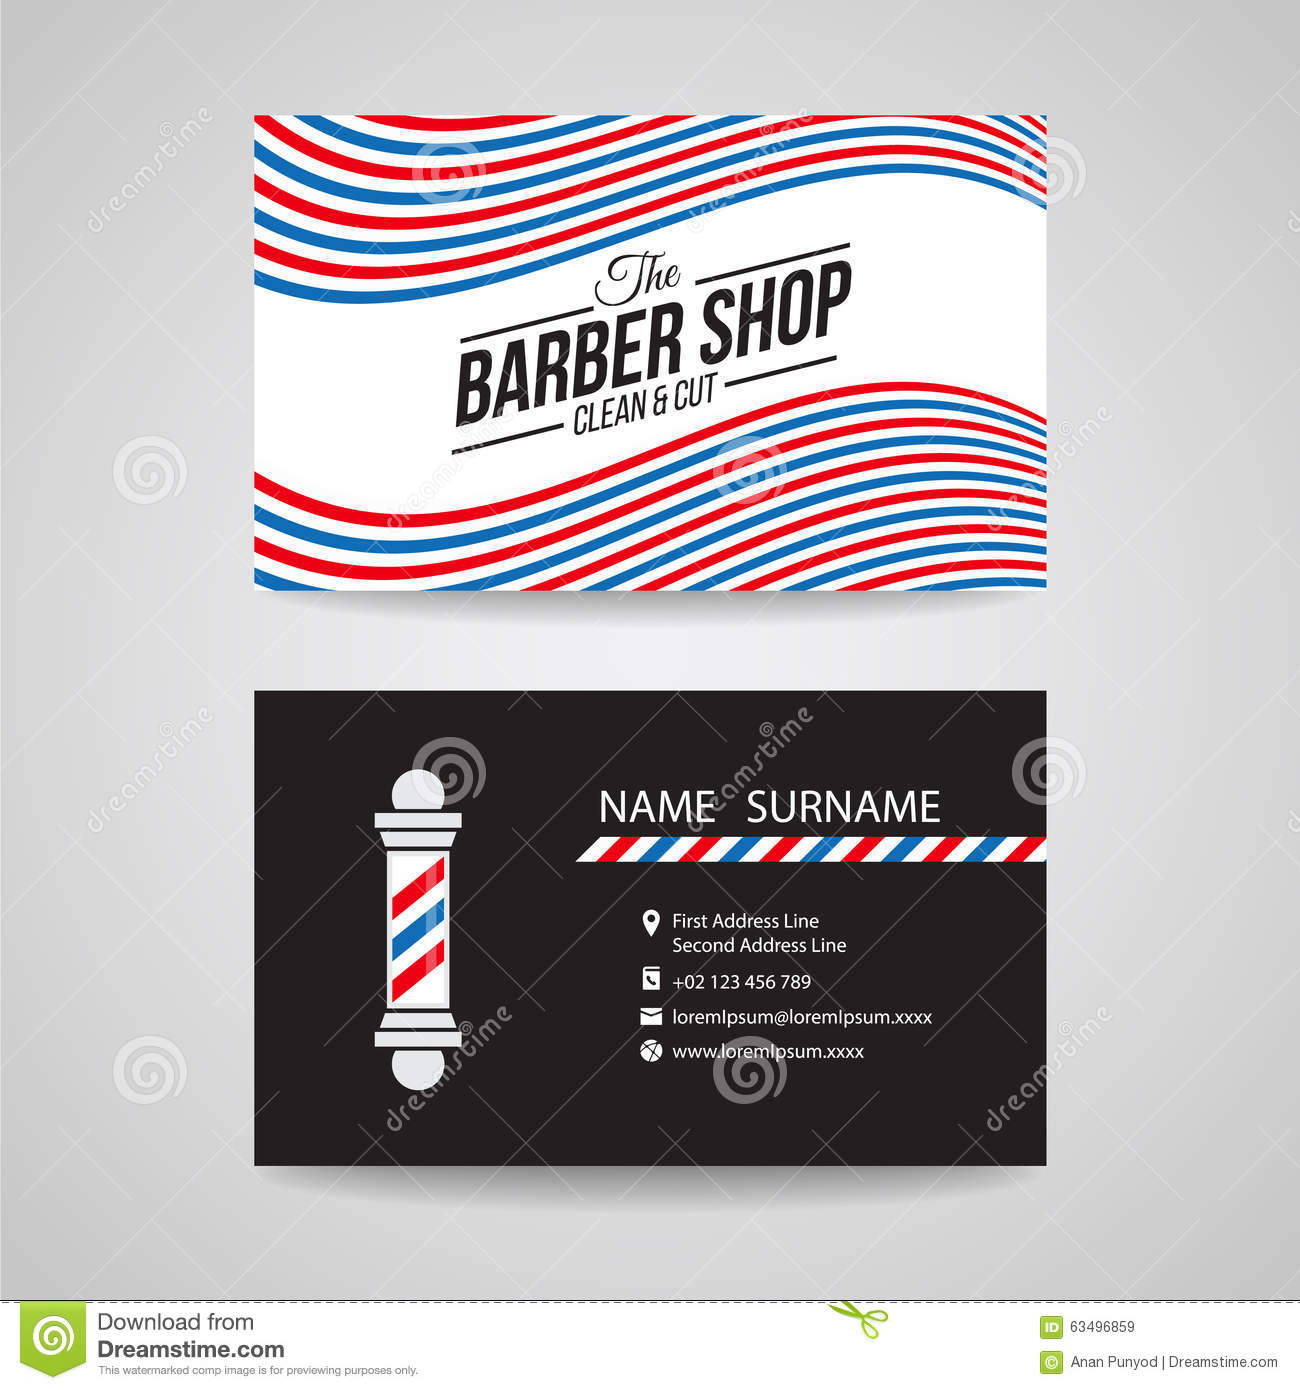 Business Card Template Design Barber Shop Stock Illustrations – 205 ...